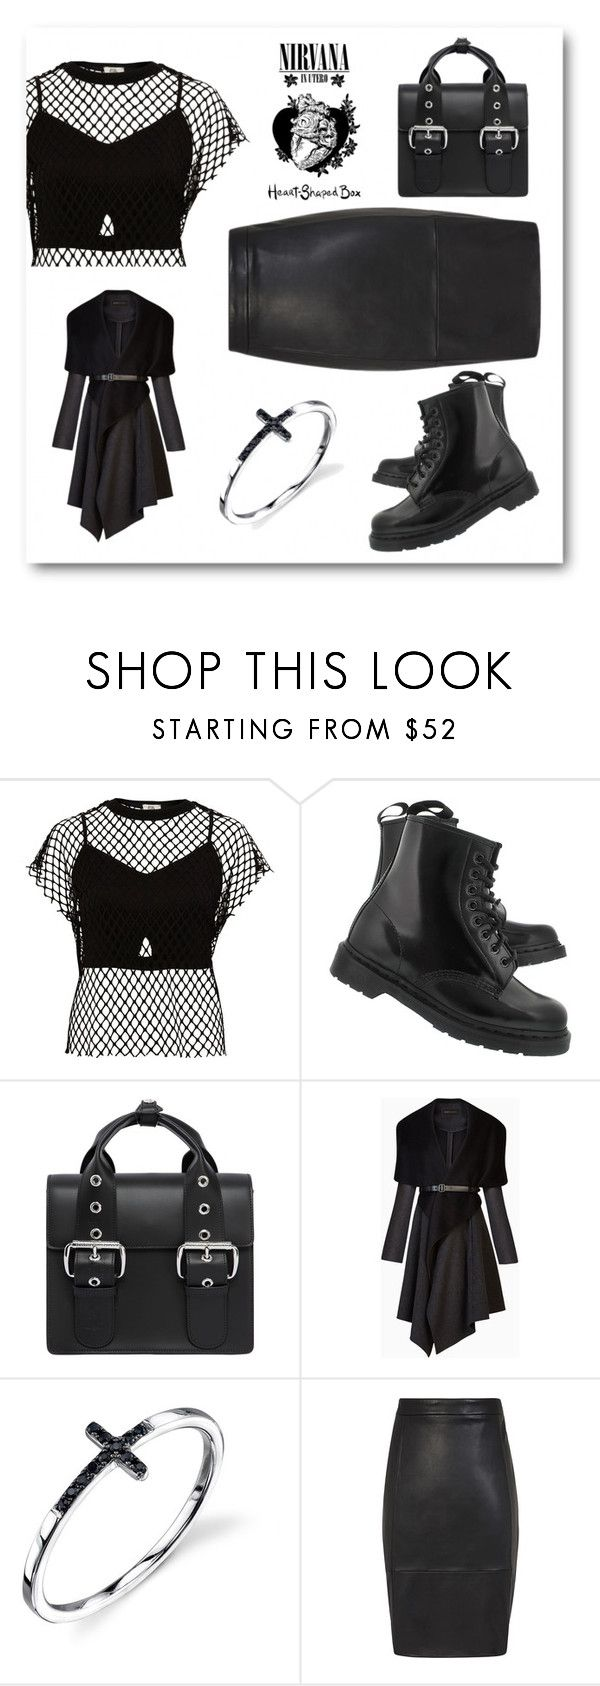 """in black"" by natalia-isikova ❤ liked on Polyvore featuring River Island, Dr. Martens, Vivienne Westwood and BCBGMAXAZRIA"